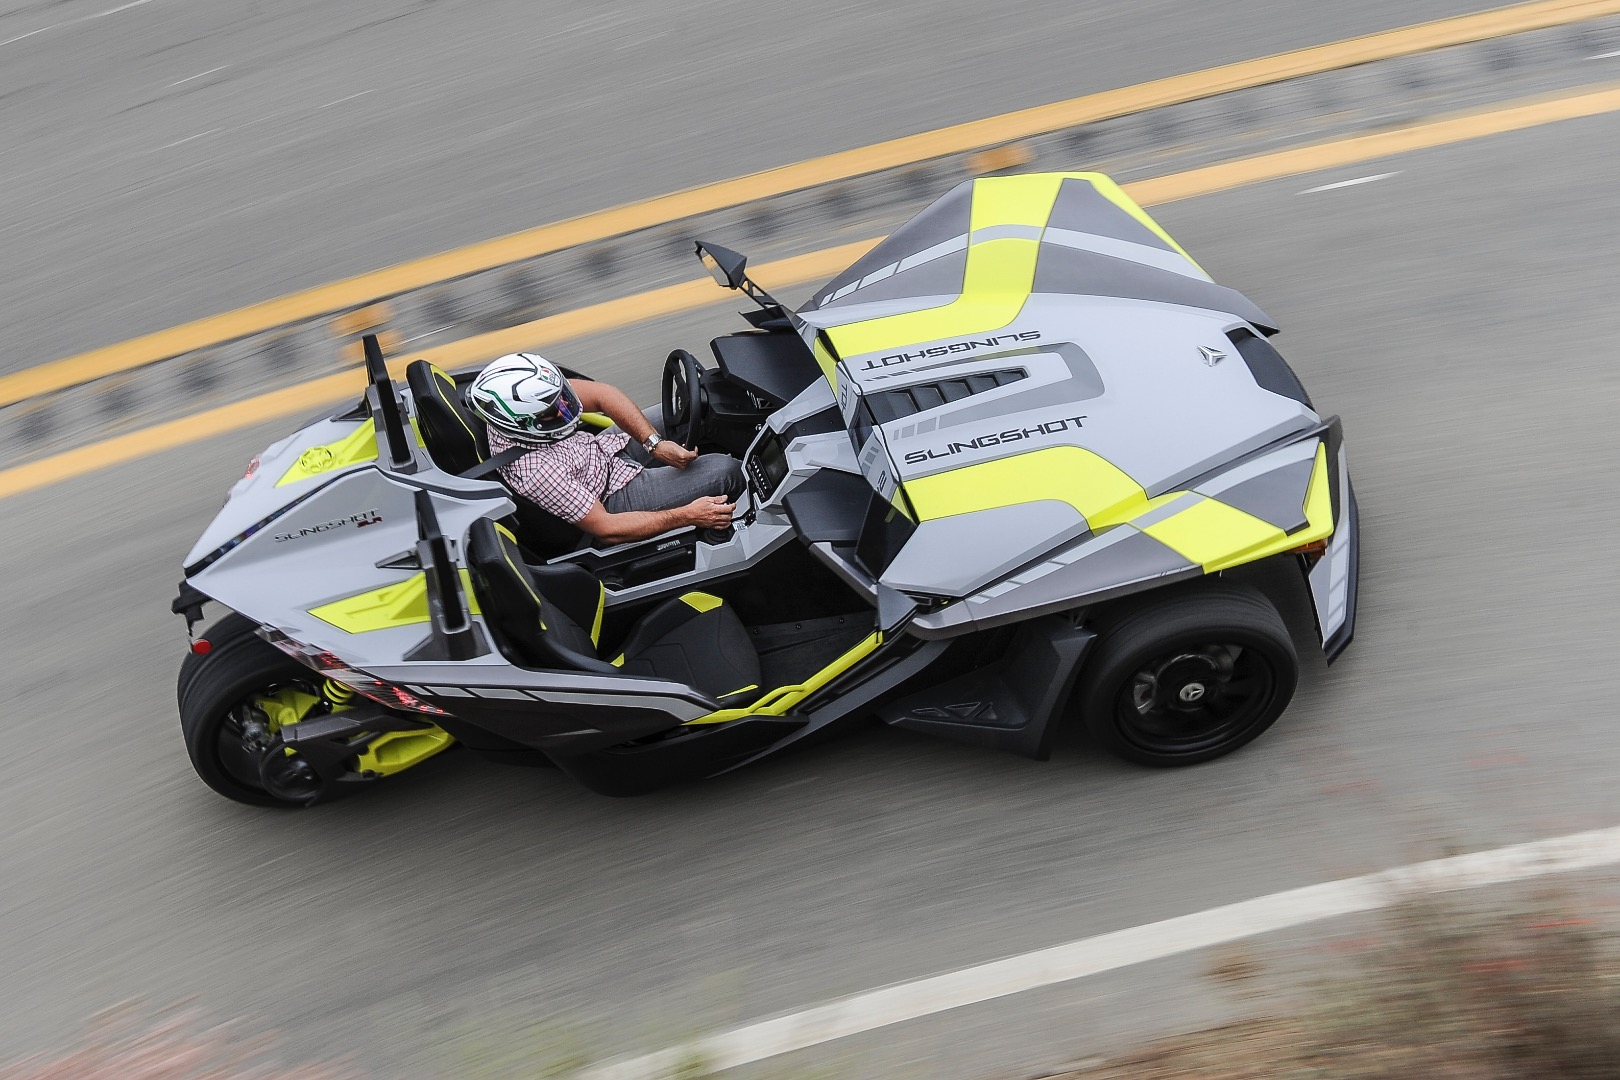 2015-2018 Polaris Slingshot Recall Due to Seat Problems